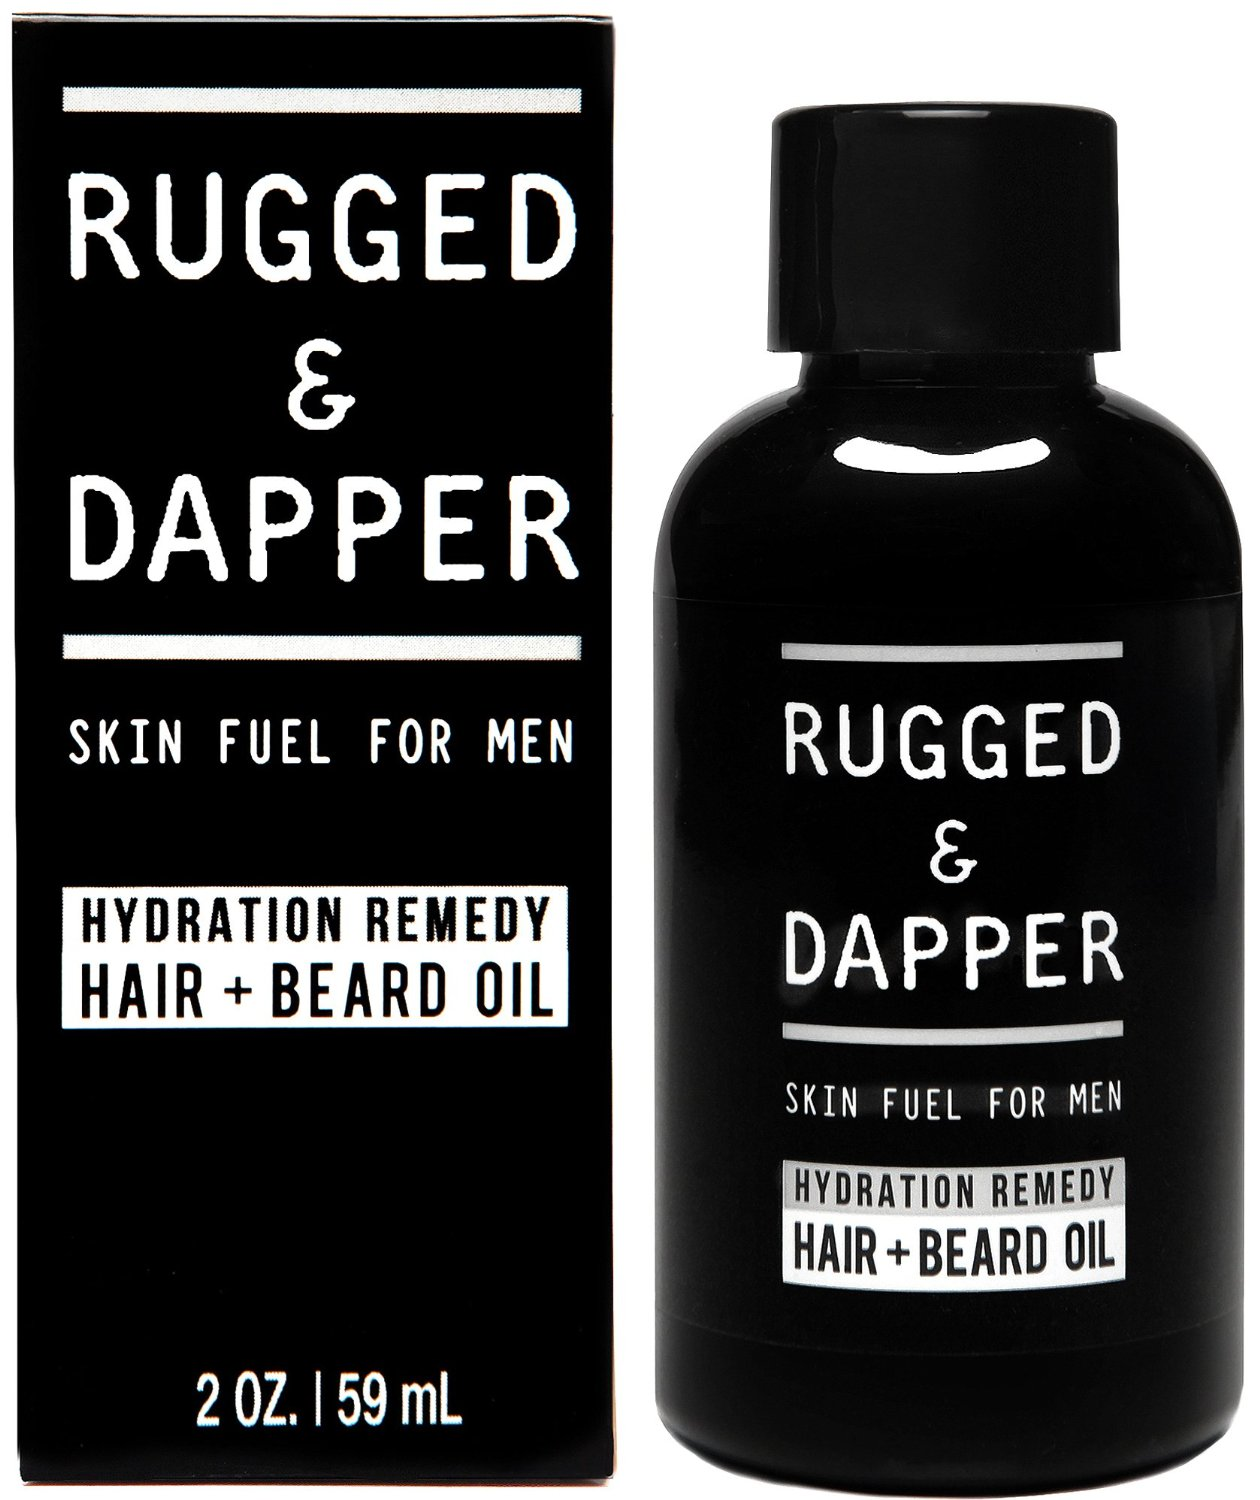 RUGGED & DAPPER – Beard Oil for Men – Organic & Natural Beard Treatment for Mustaches, Beards & Hair – a Barber-Quality Blend of Essential Oils with a Masculine Scent – For all Beard & Hair Types